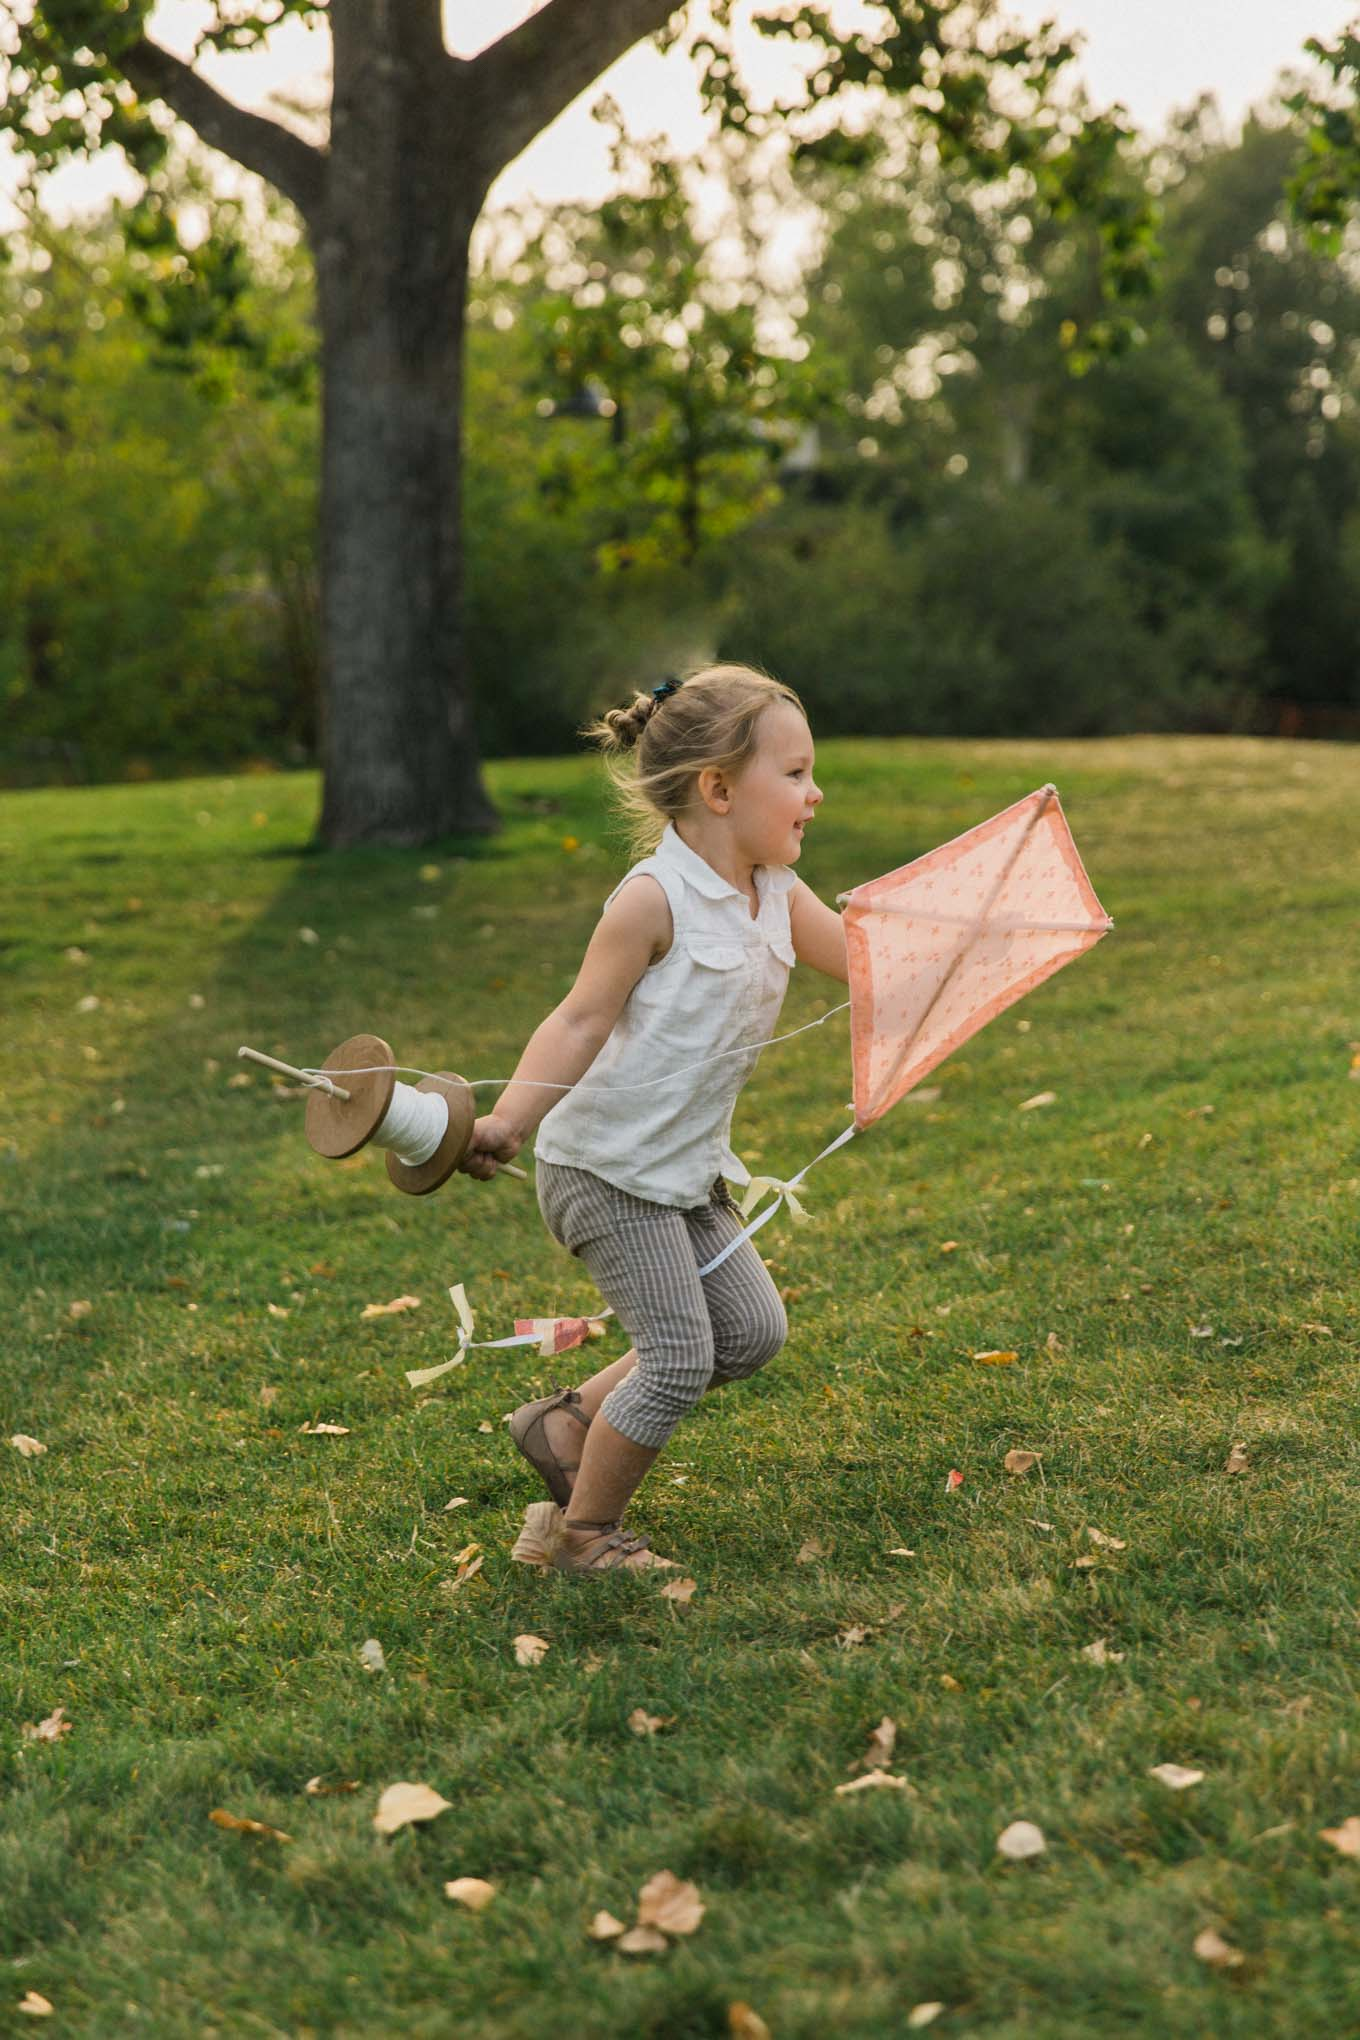 This DIY old fashioned kite is not only a great craft to do with your kids, young and old, it also turns into a memorable activity.